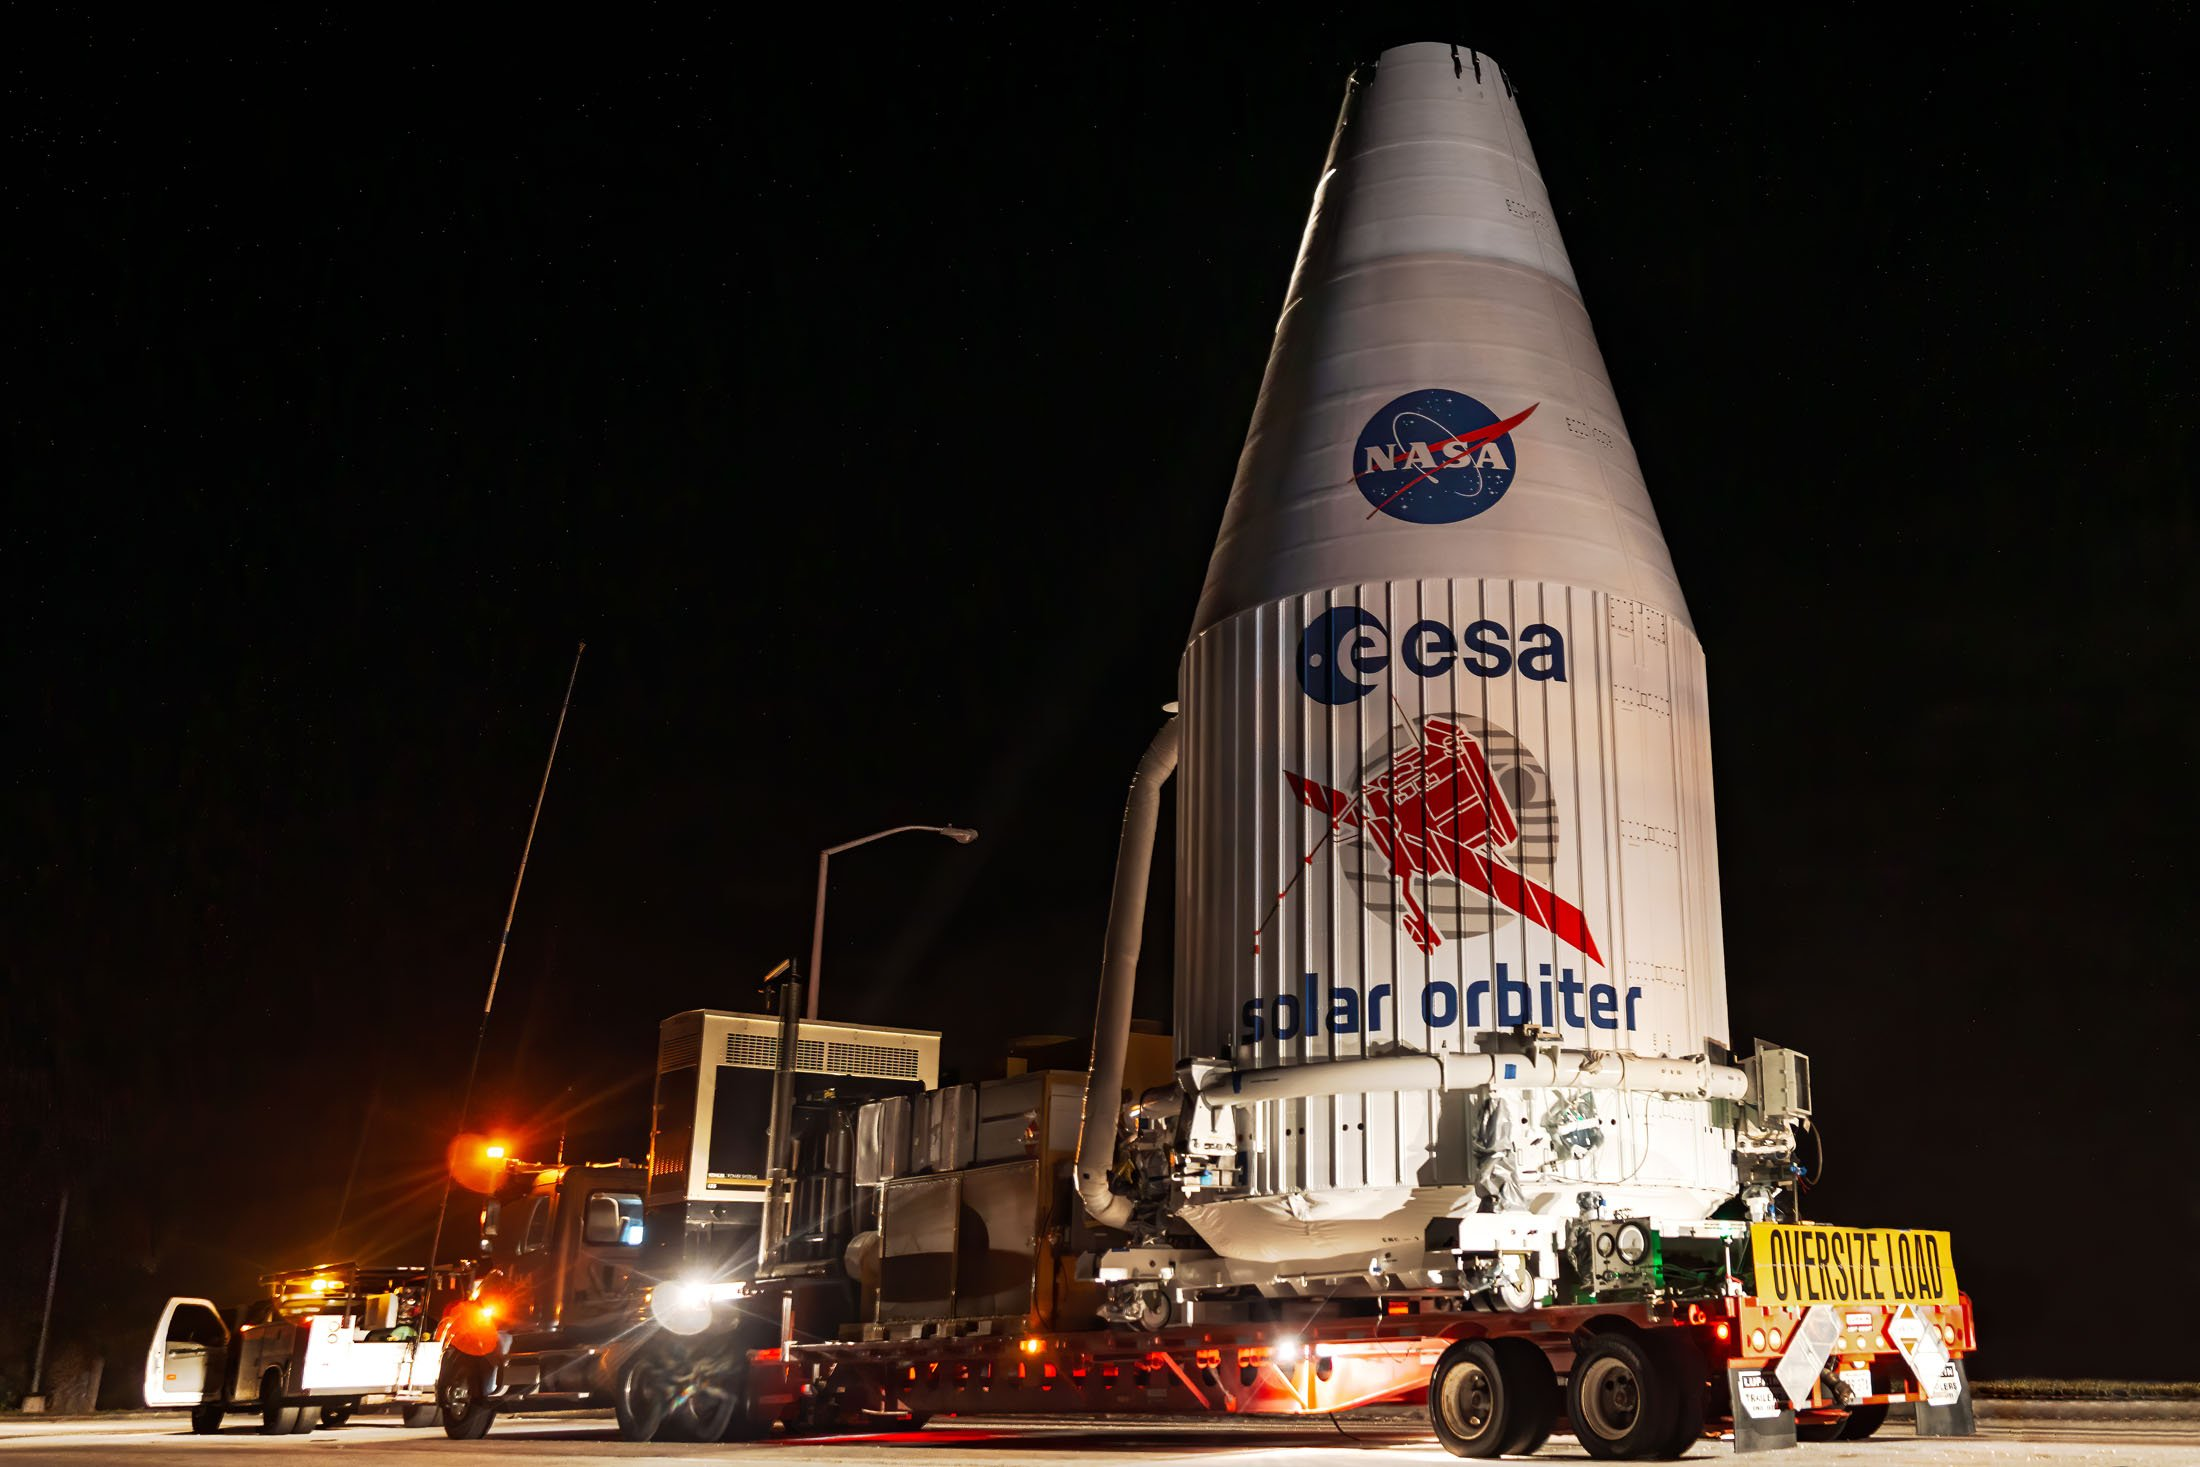 The Solar Orbiter, a probe to study the sun up close, is transported By United Launch Alliance in preparation to being launched atop an Atlas V 411 rocket. (Glenn Davis/glenndavisphotography.com)